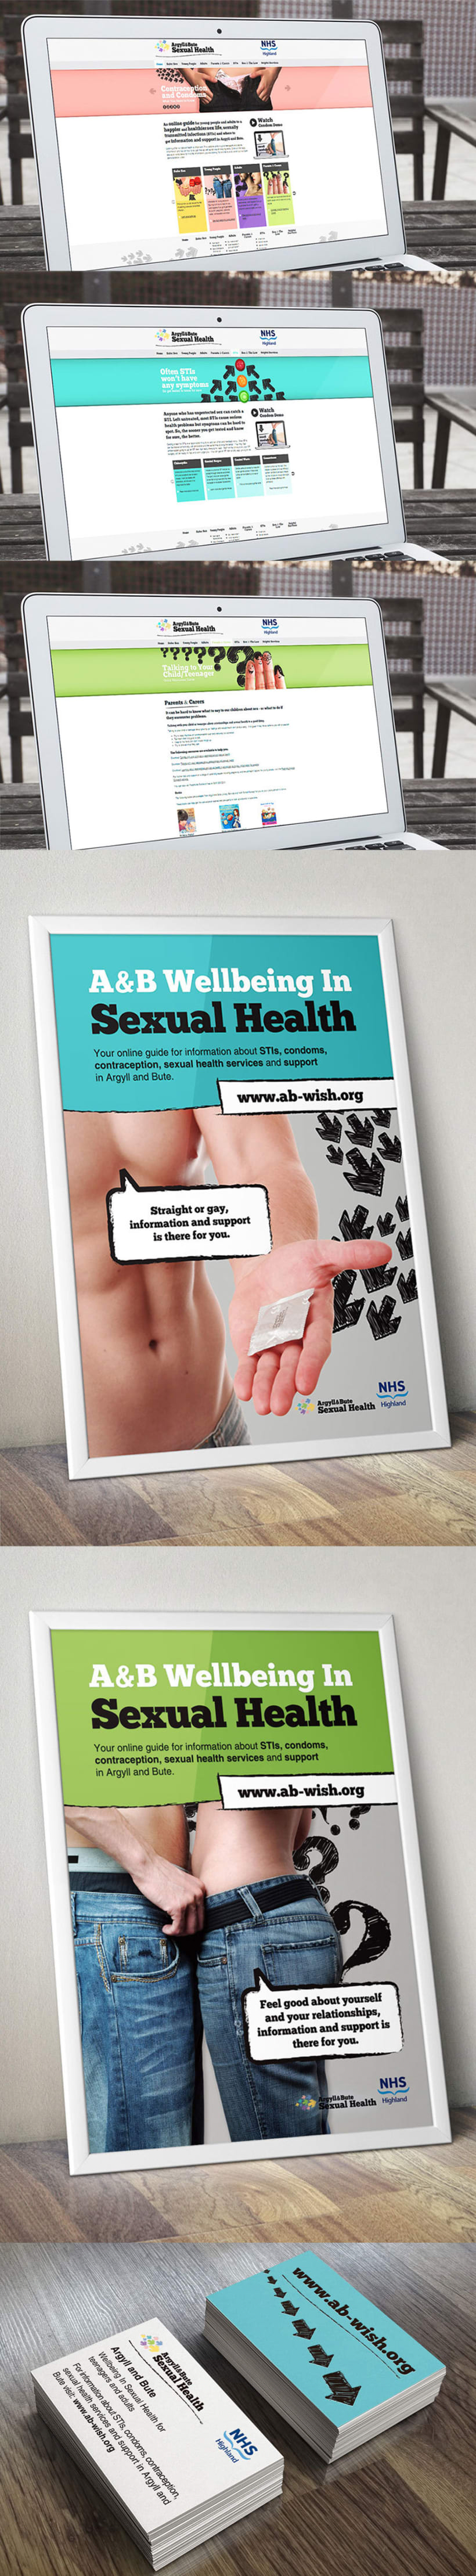 Argyll&Bute Sexual Health NHS -1